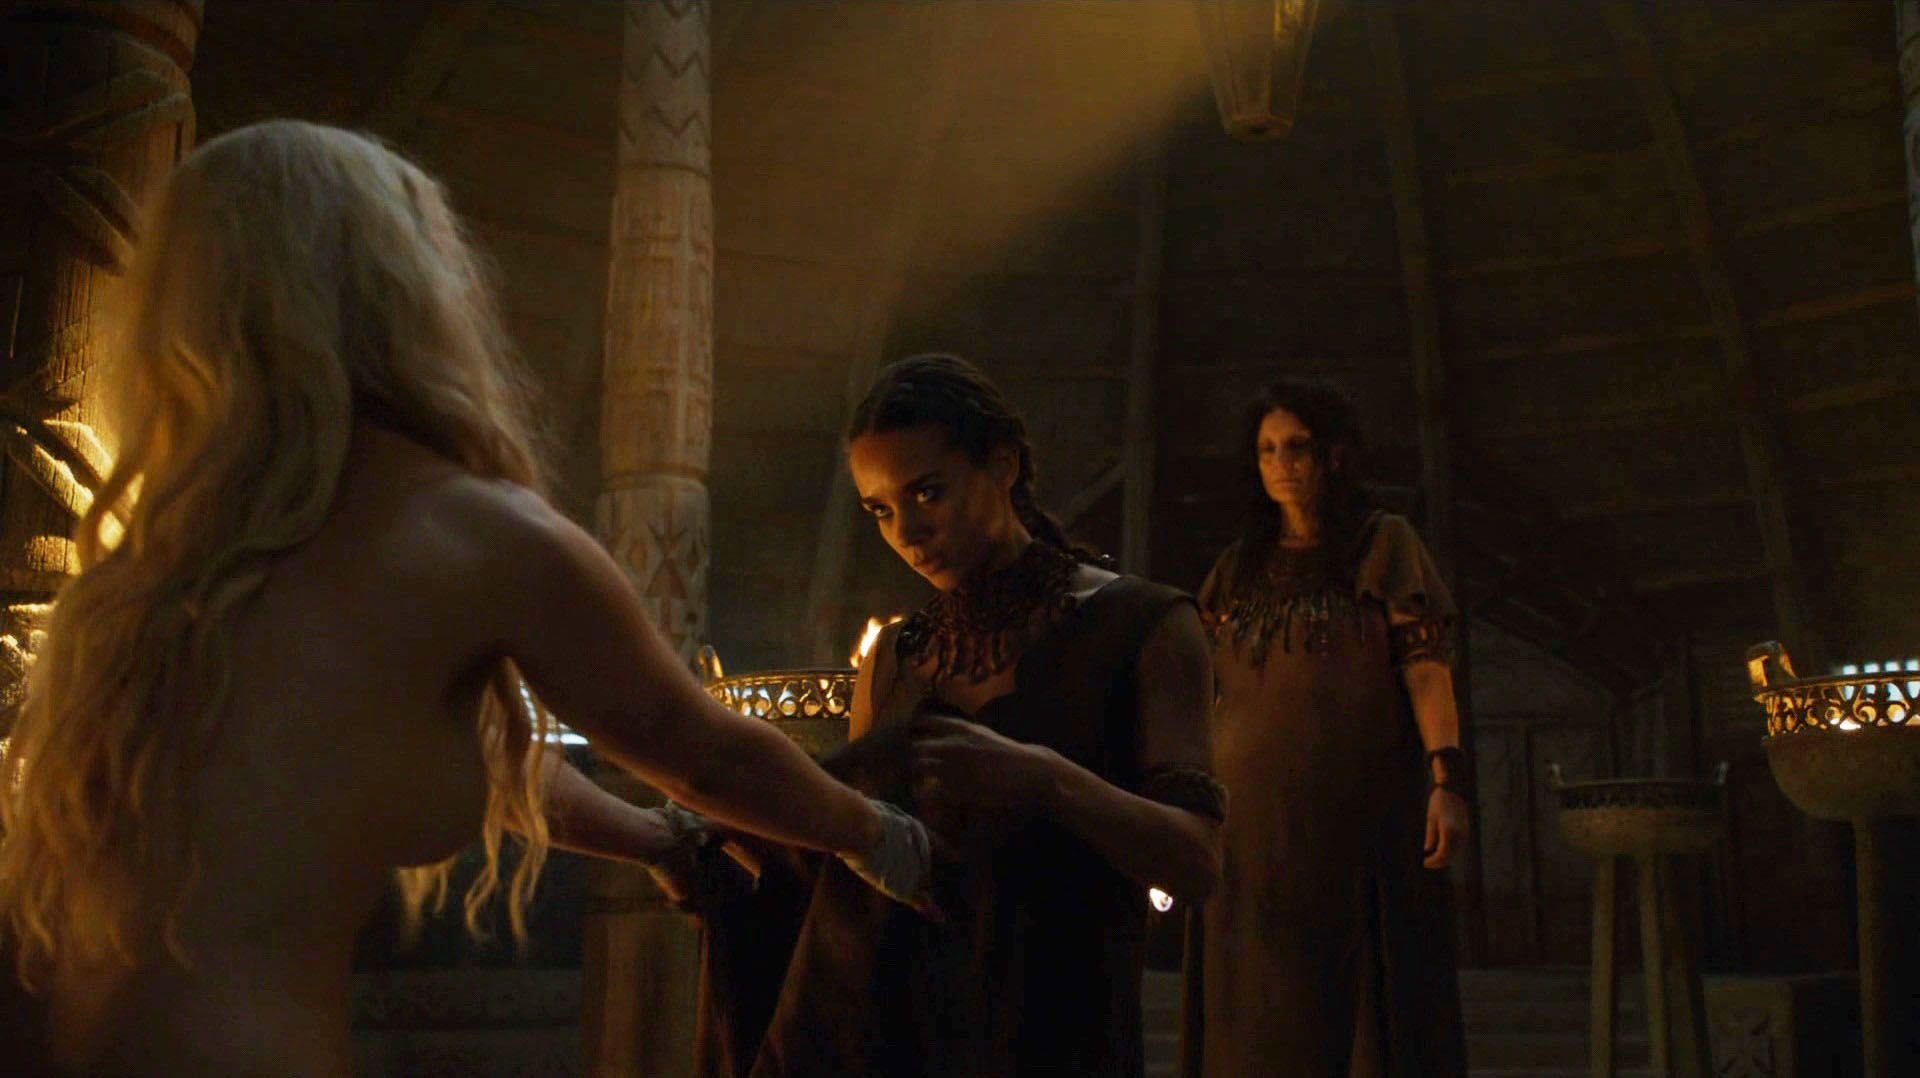 Forum on this topic: Chrissy Teigen Naked , emilia-clarke-nude-game-of-thrones-2011/